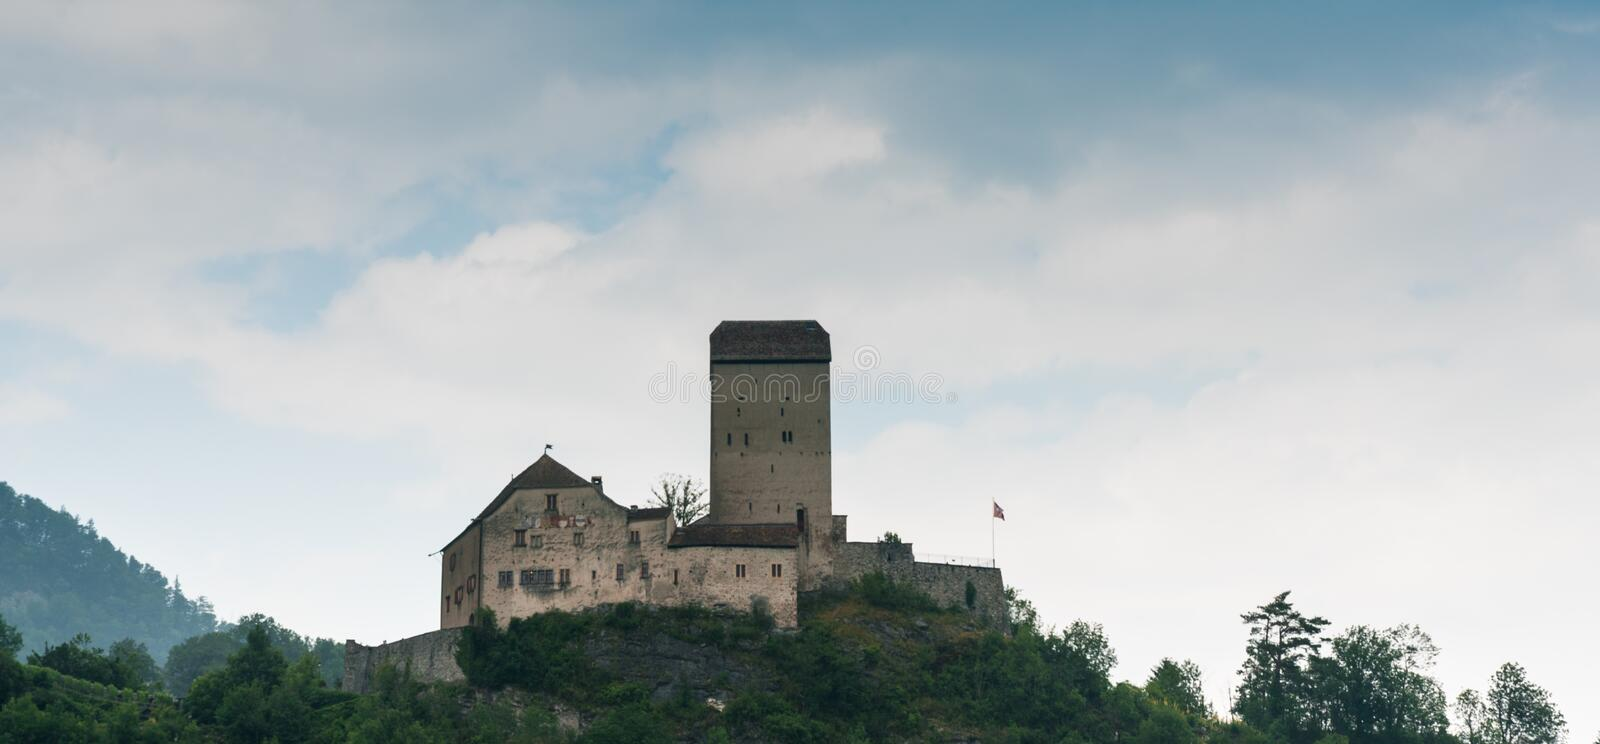 The historic medieval castle at Sargans in the southeastern Swiss Alps on its grassy hilltop promontory. Sargans, SG / Switzerland - 9. July 2019: the historic royalty free stock image